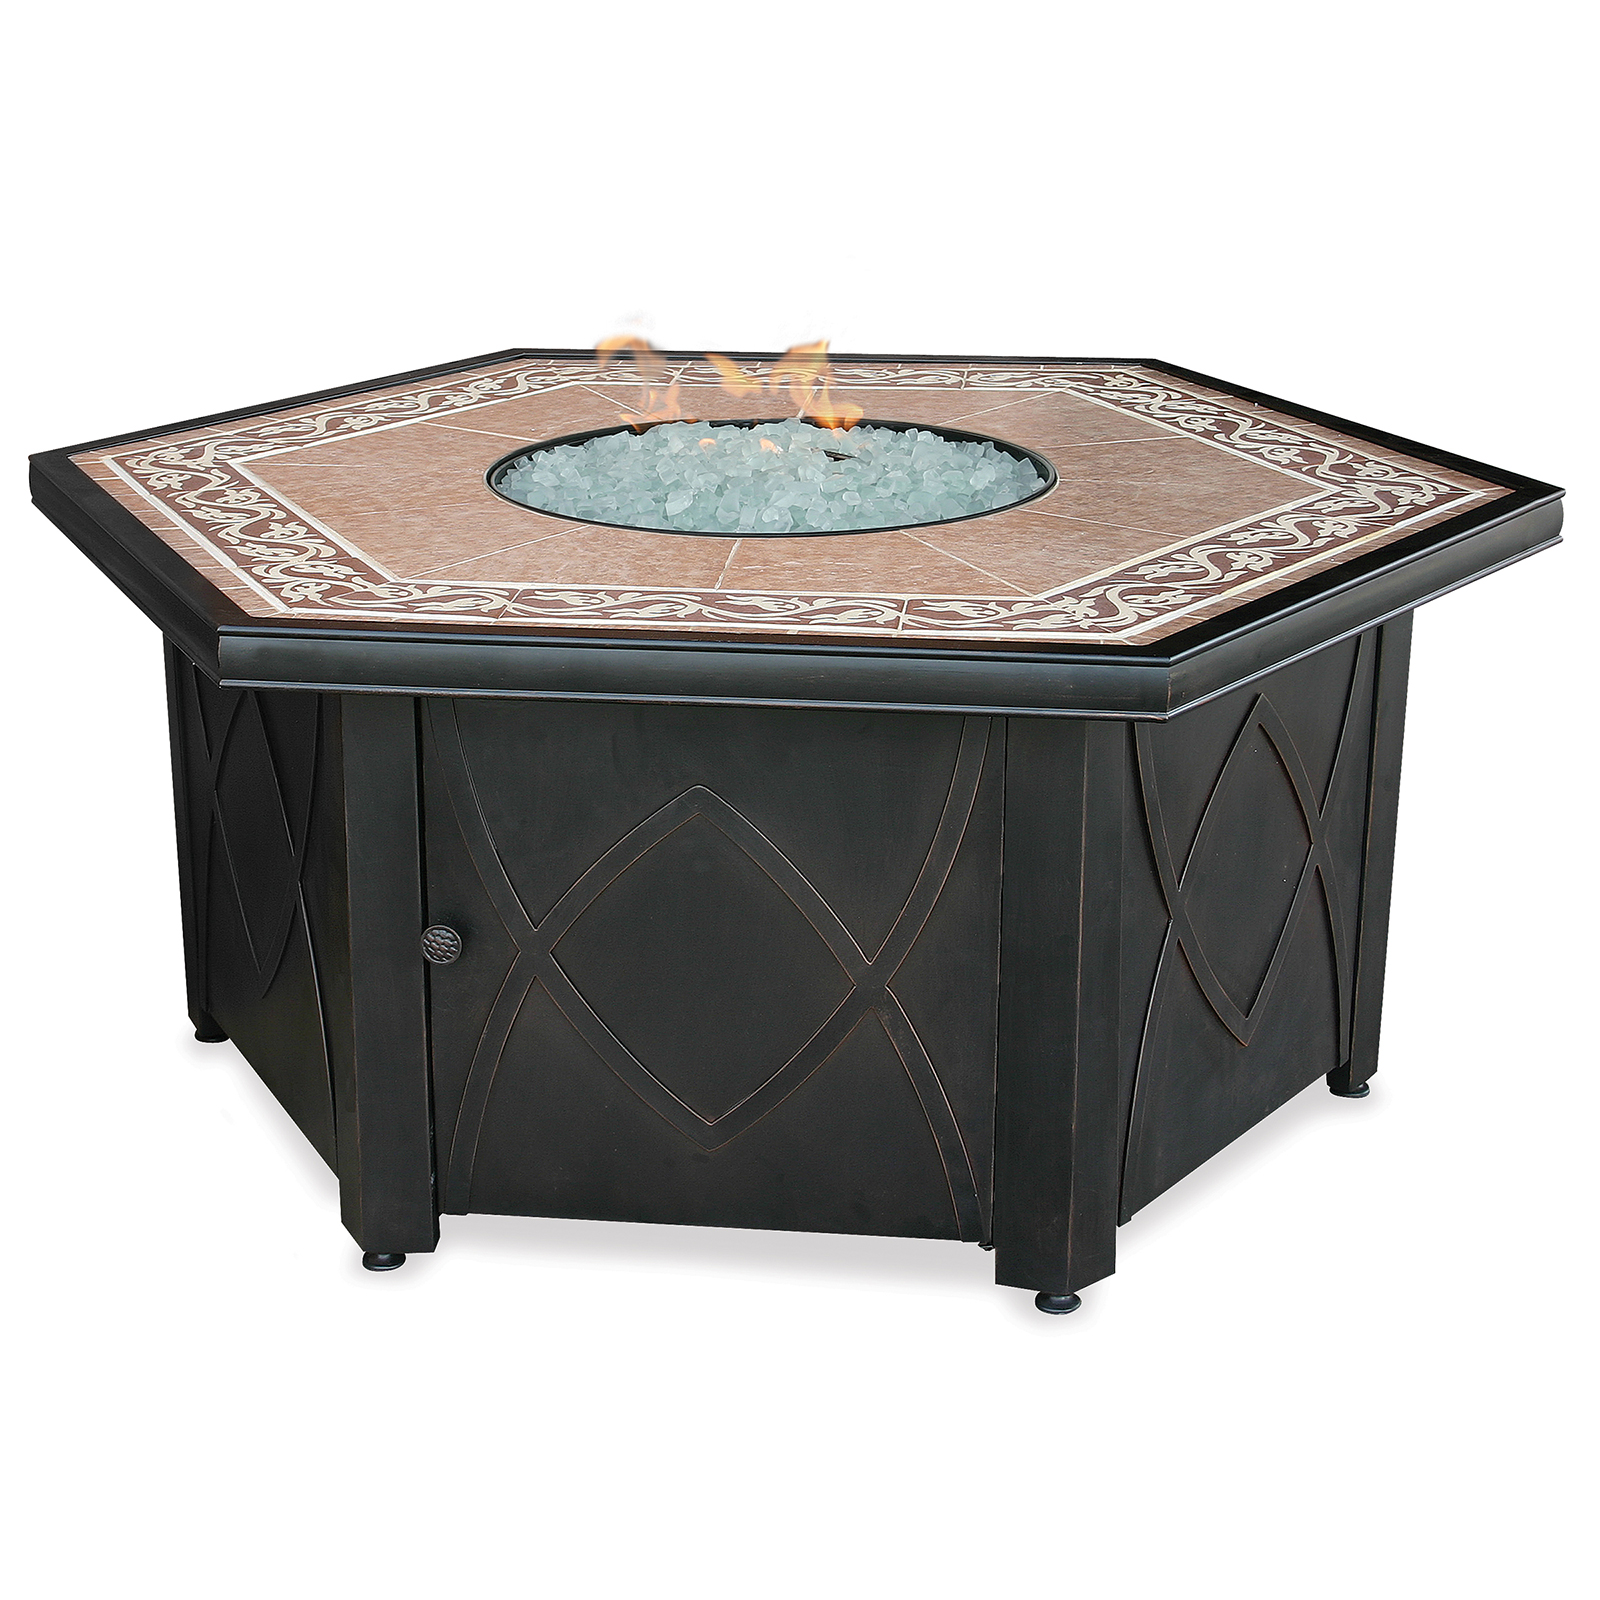 Fireplace Tables Outdoor Endless Summer Outdoor Fire Table Lp Gas With Decorative